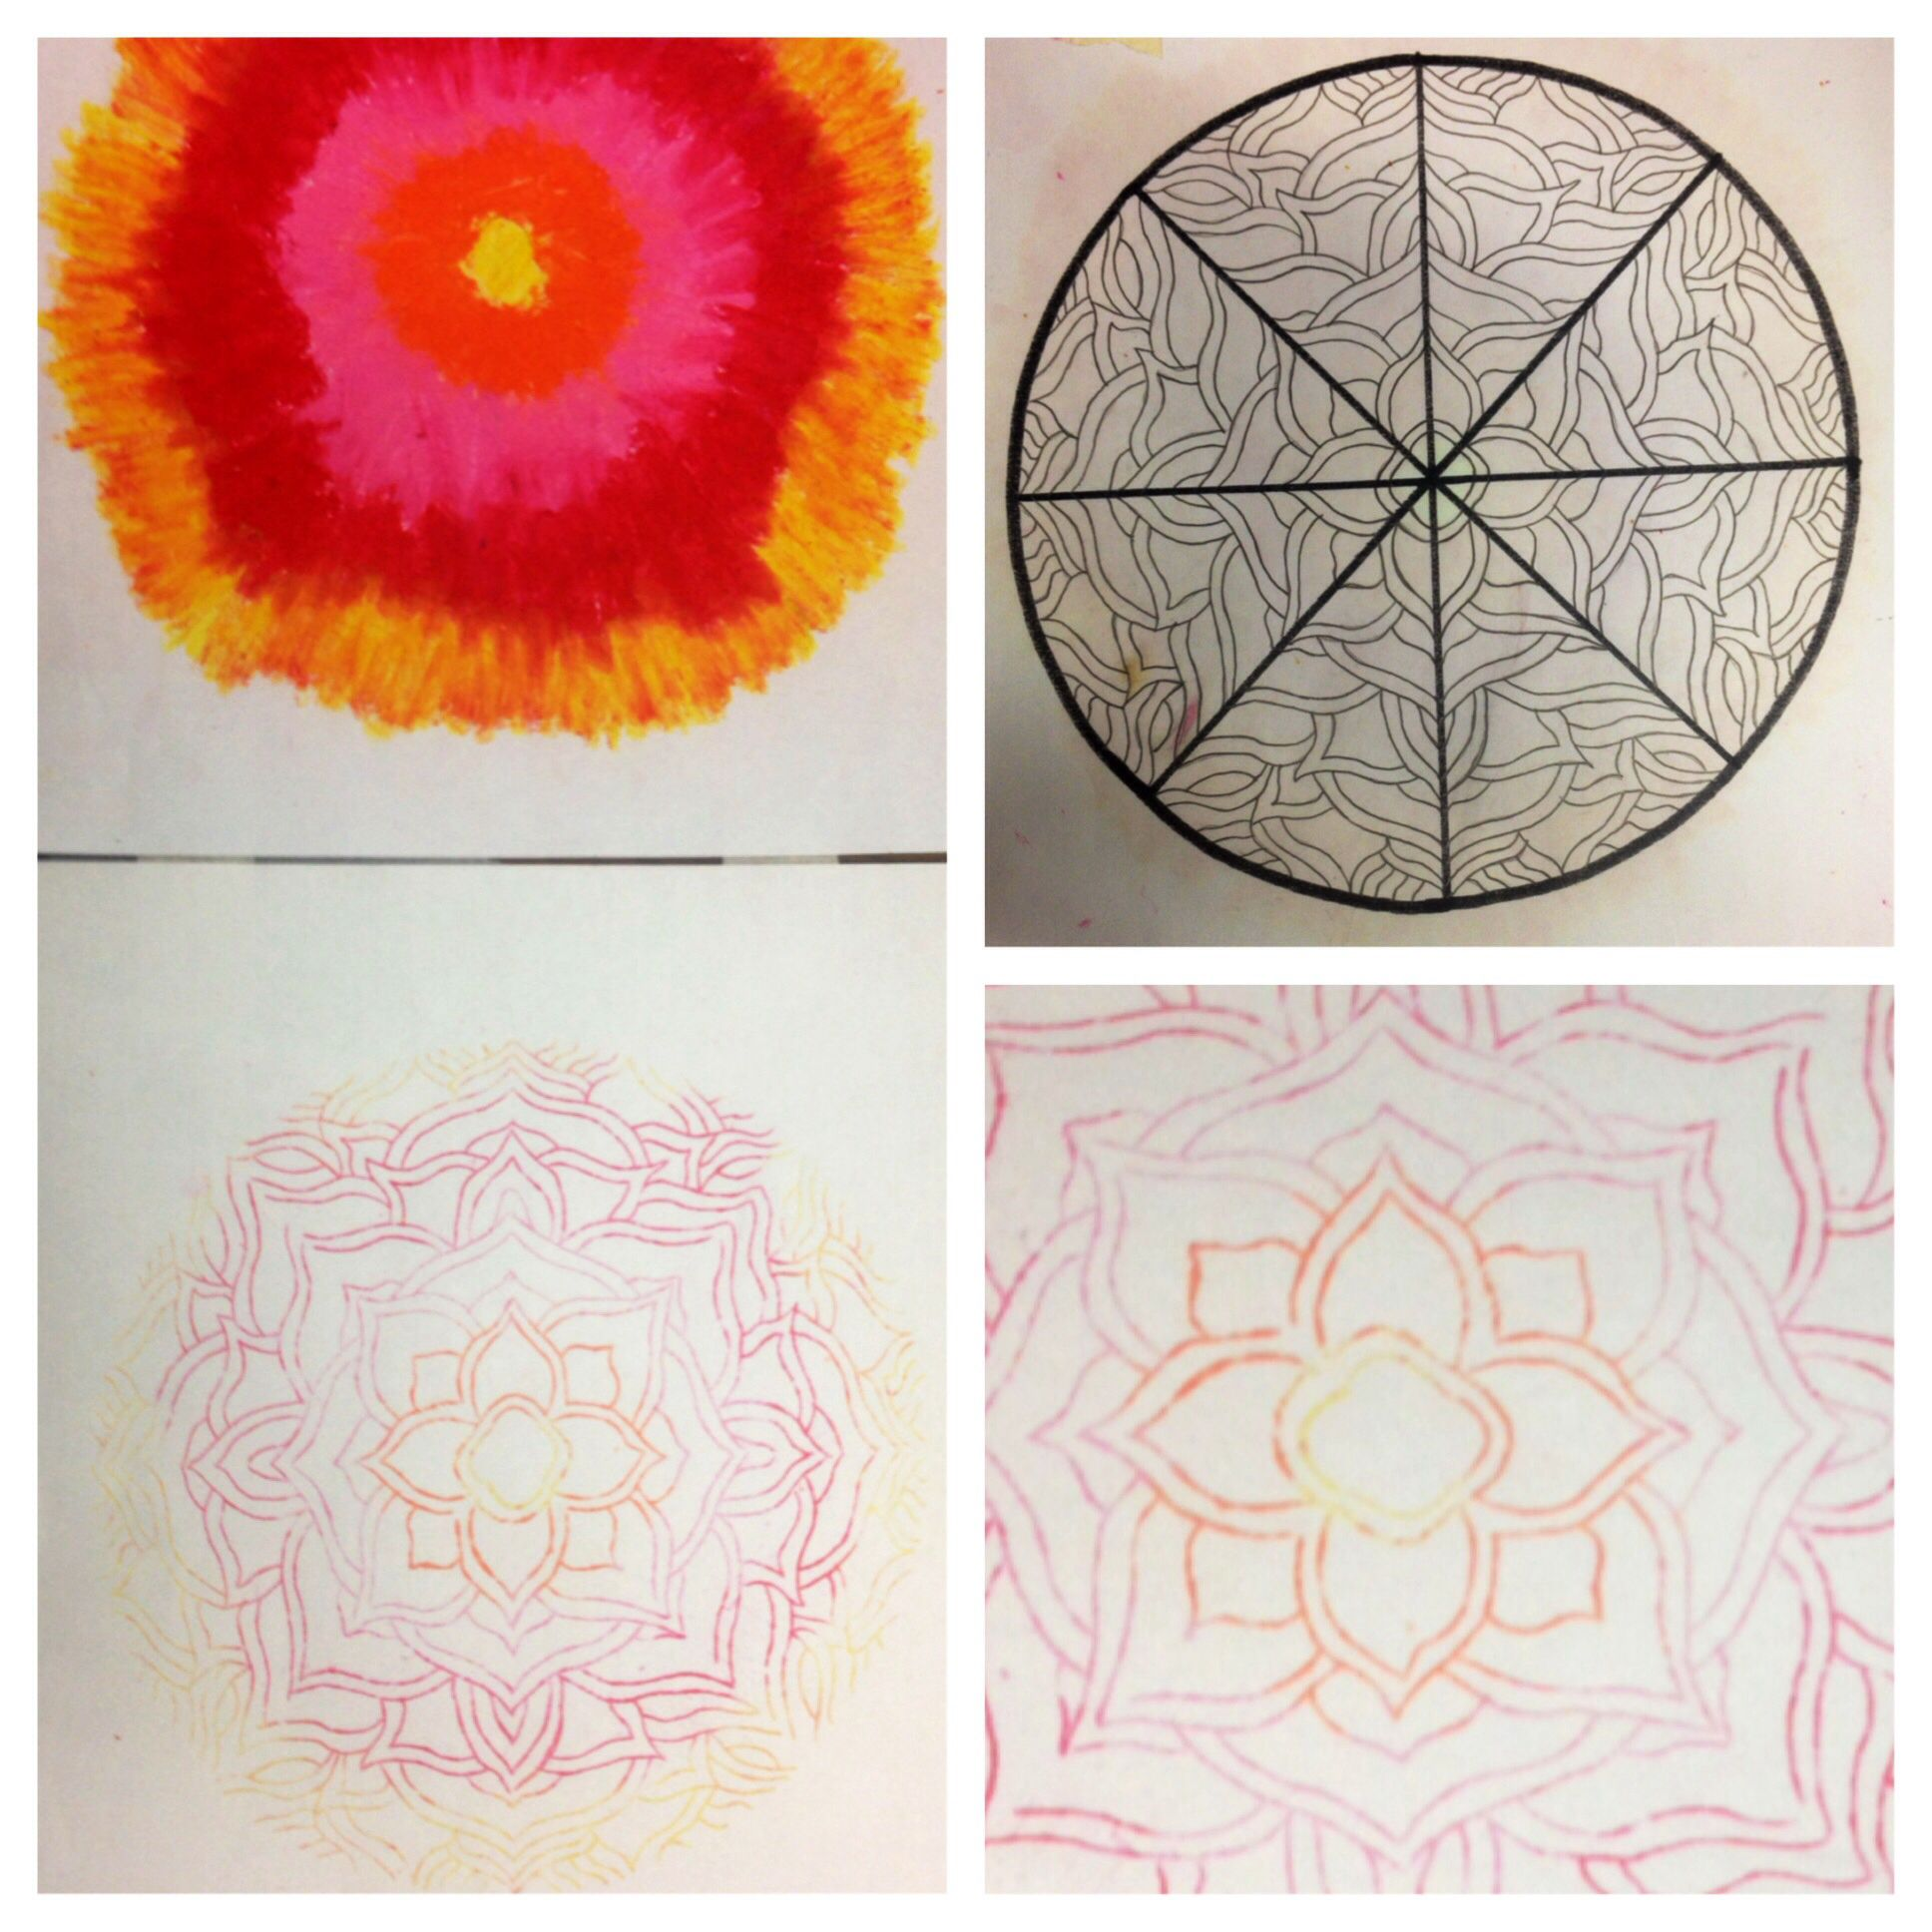 Oil Print And Radial Symmetry We Designed A Gridded Circle And Created A Symmetrical Design Next We Filled Kids Canvas Art Art Therapy Projects Teaching Art